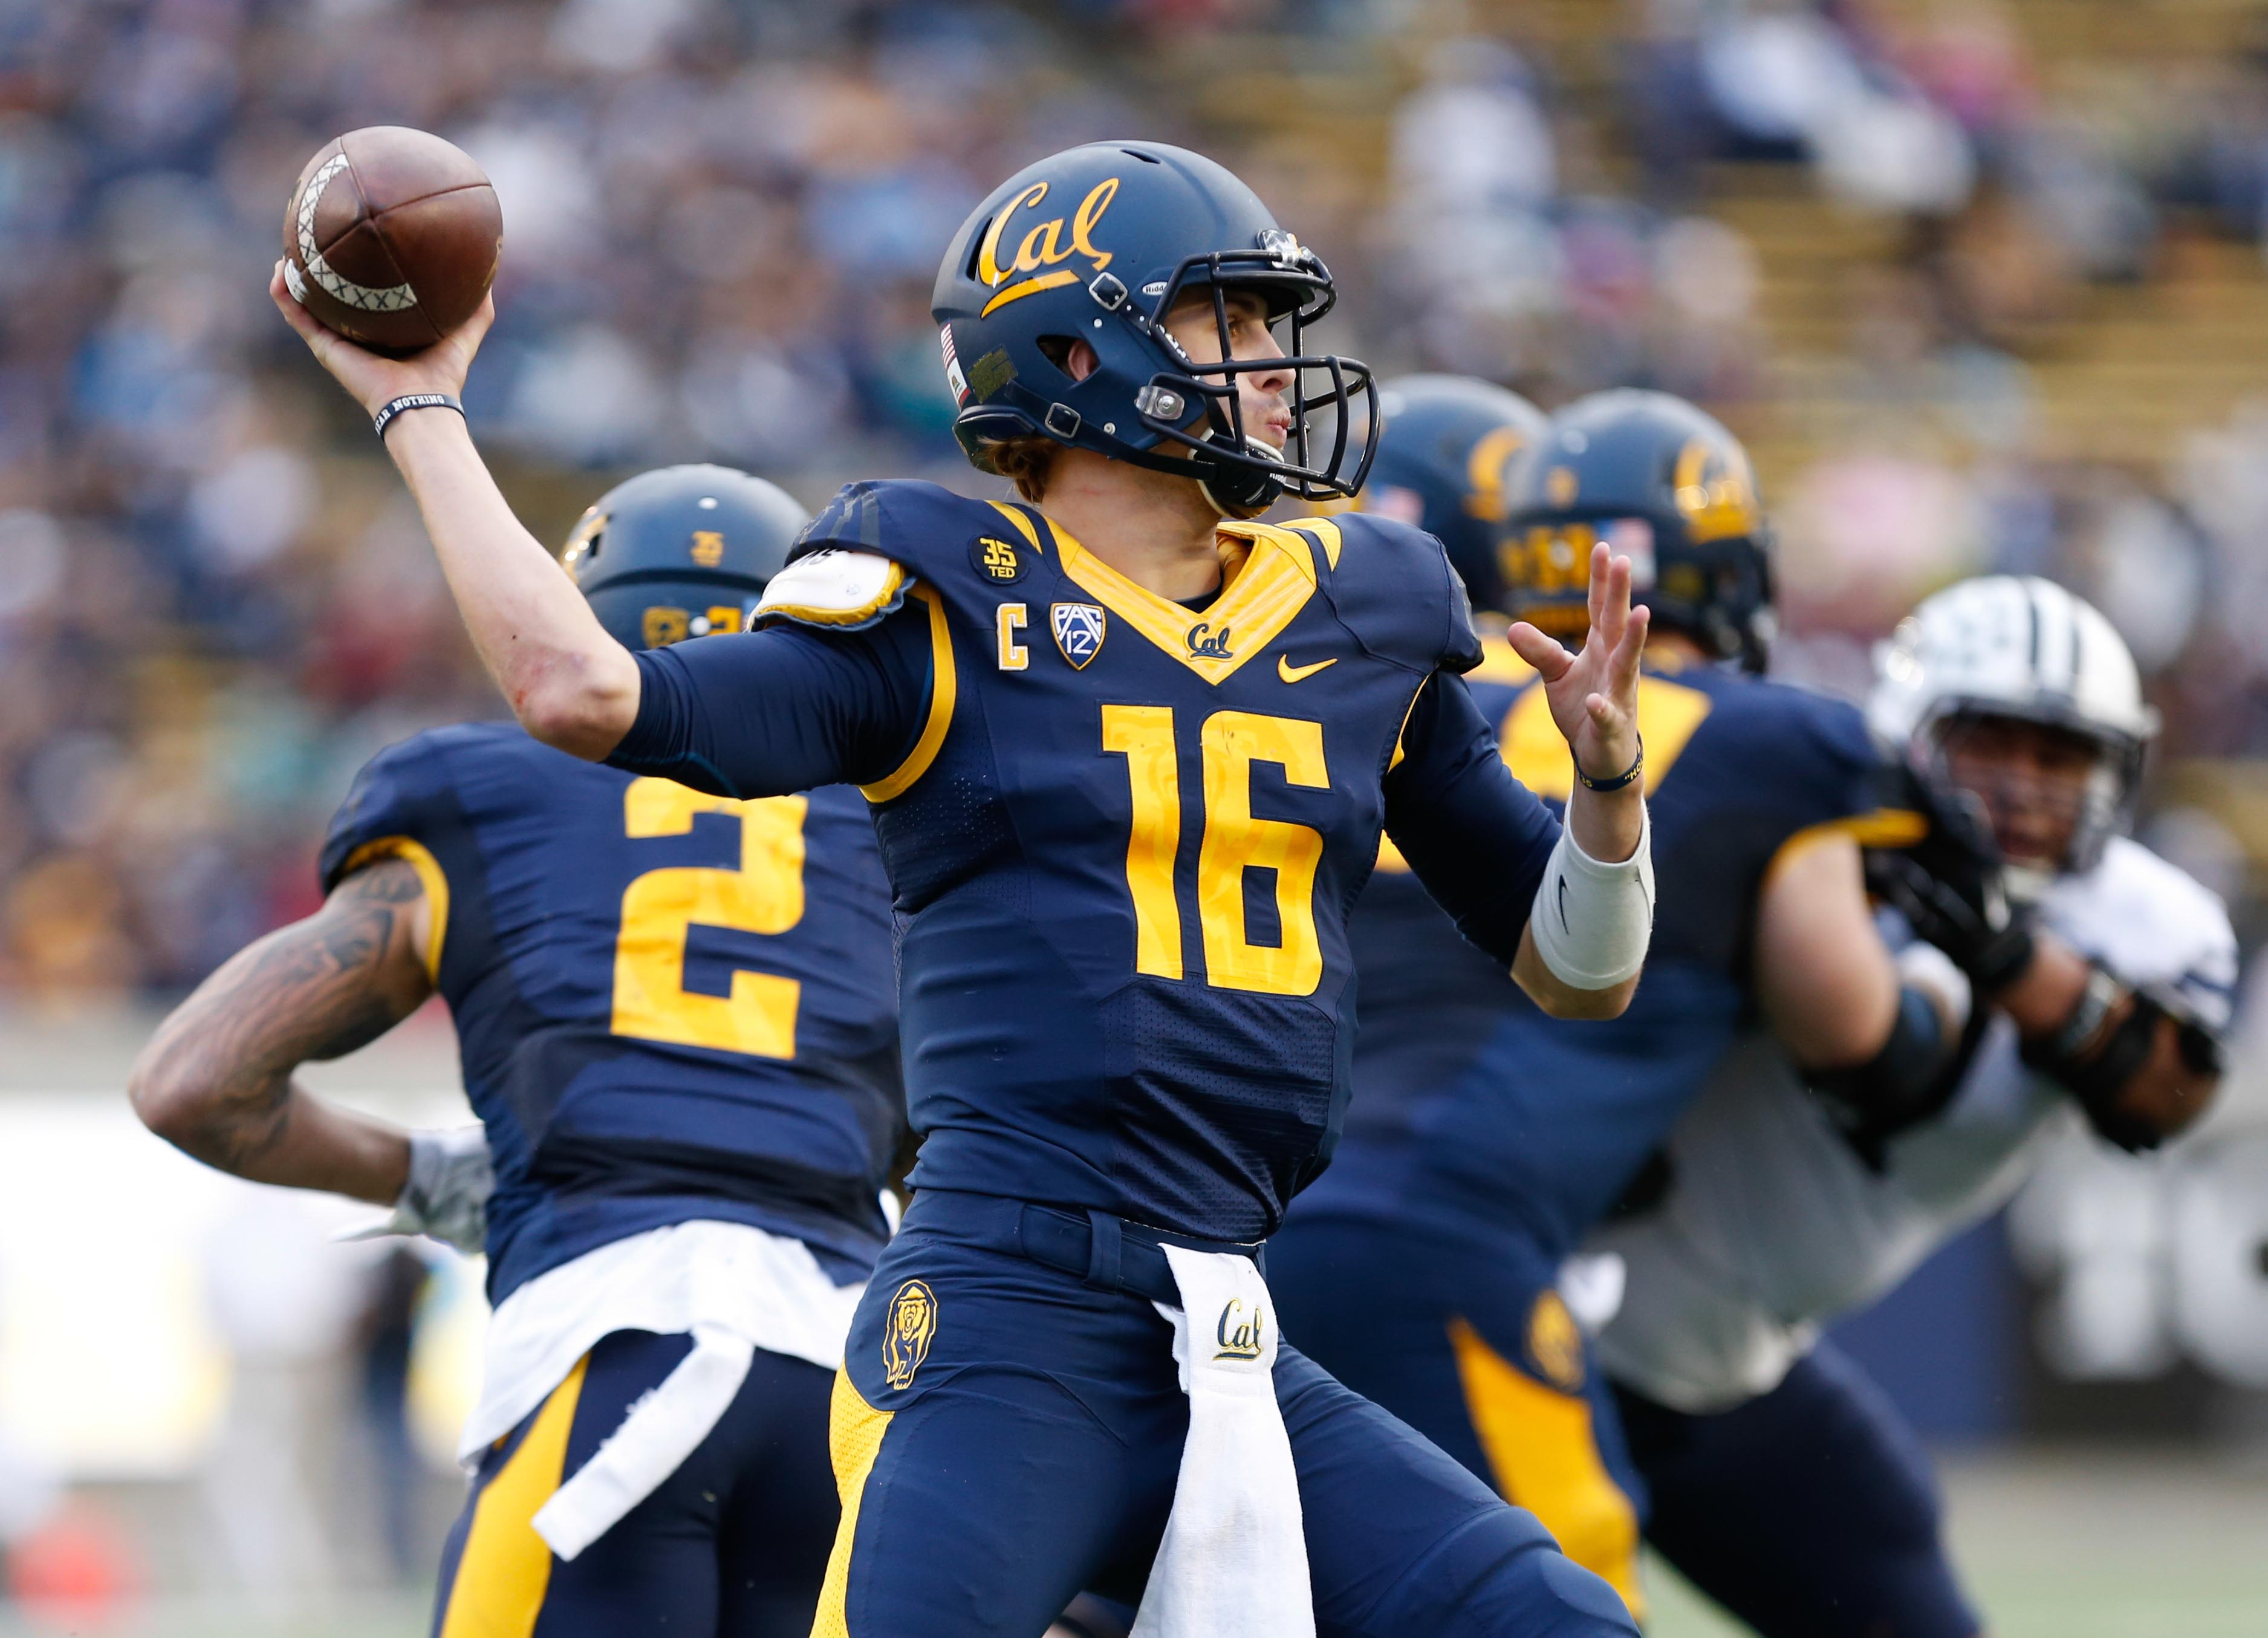 Cal QB Jared Goff should put up video game numbers again in 2015.